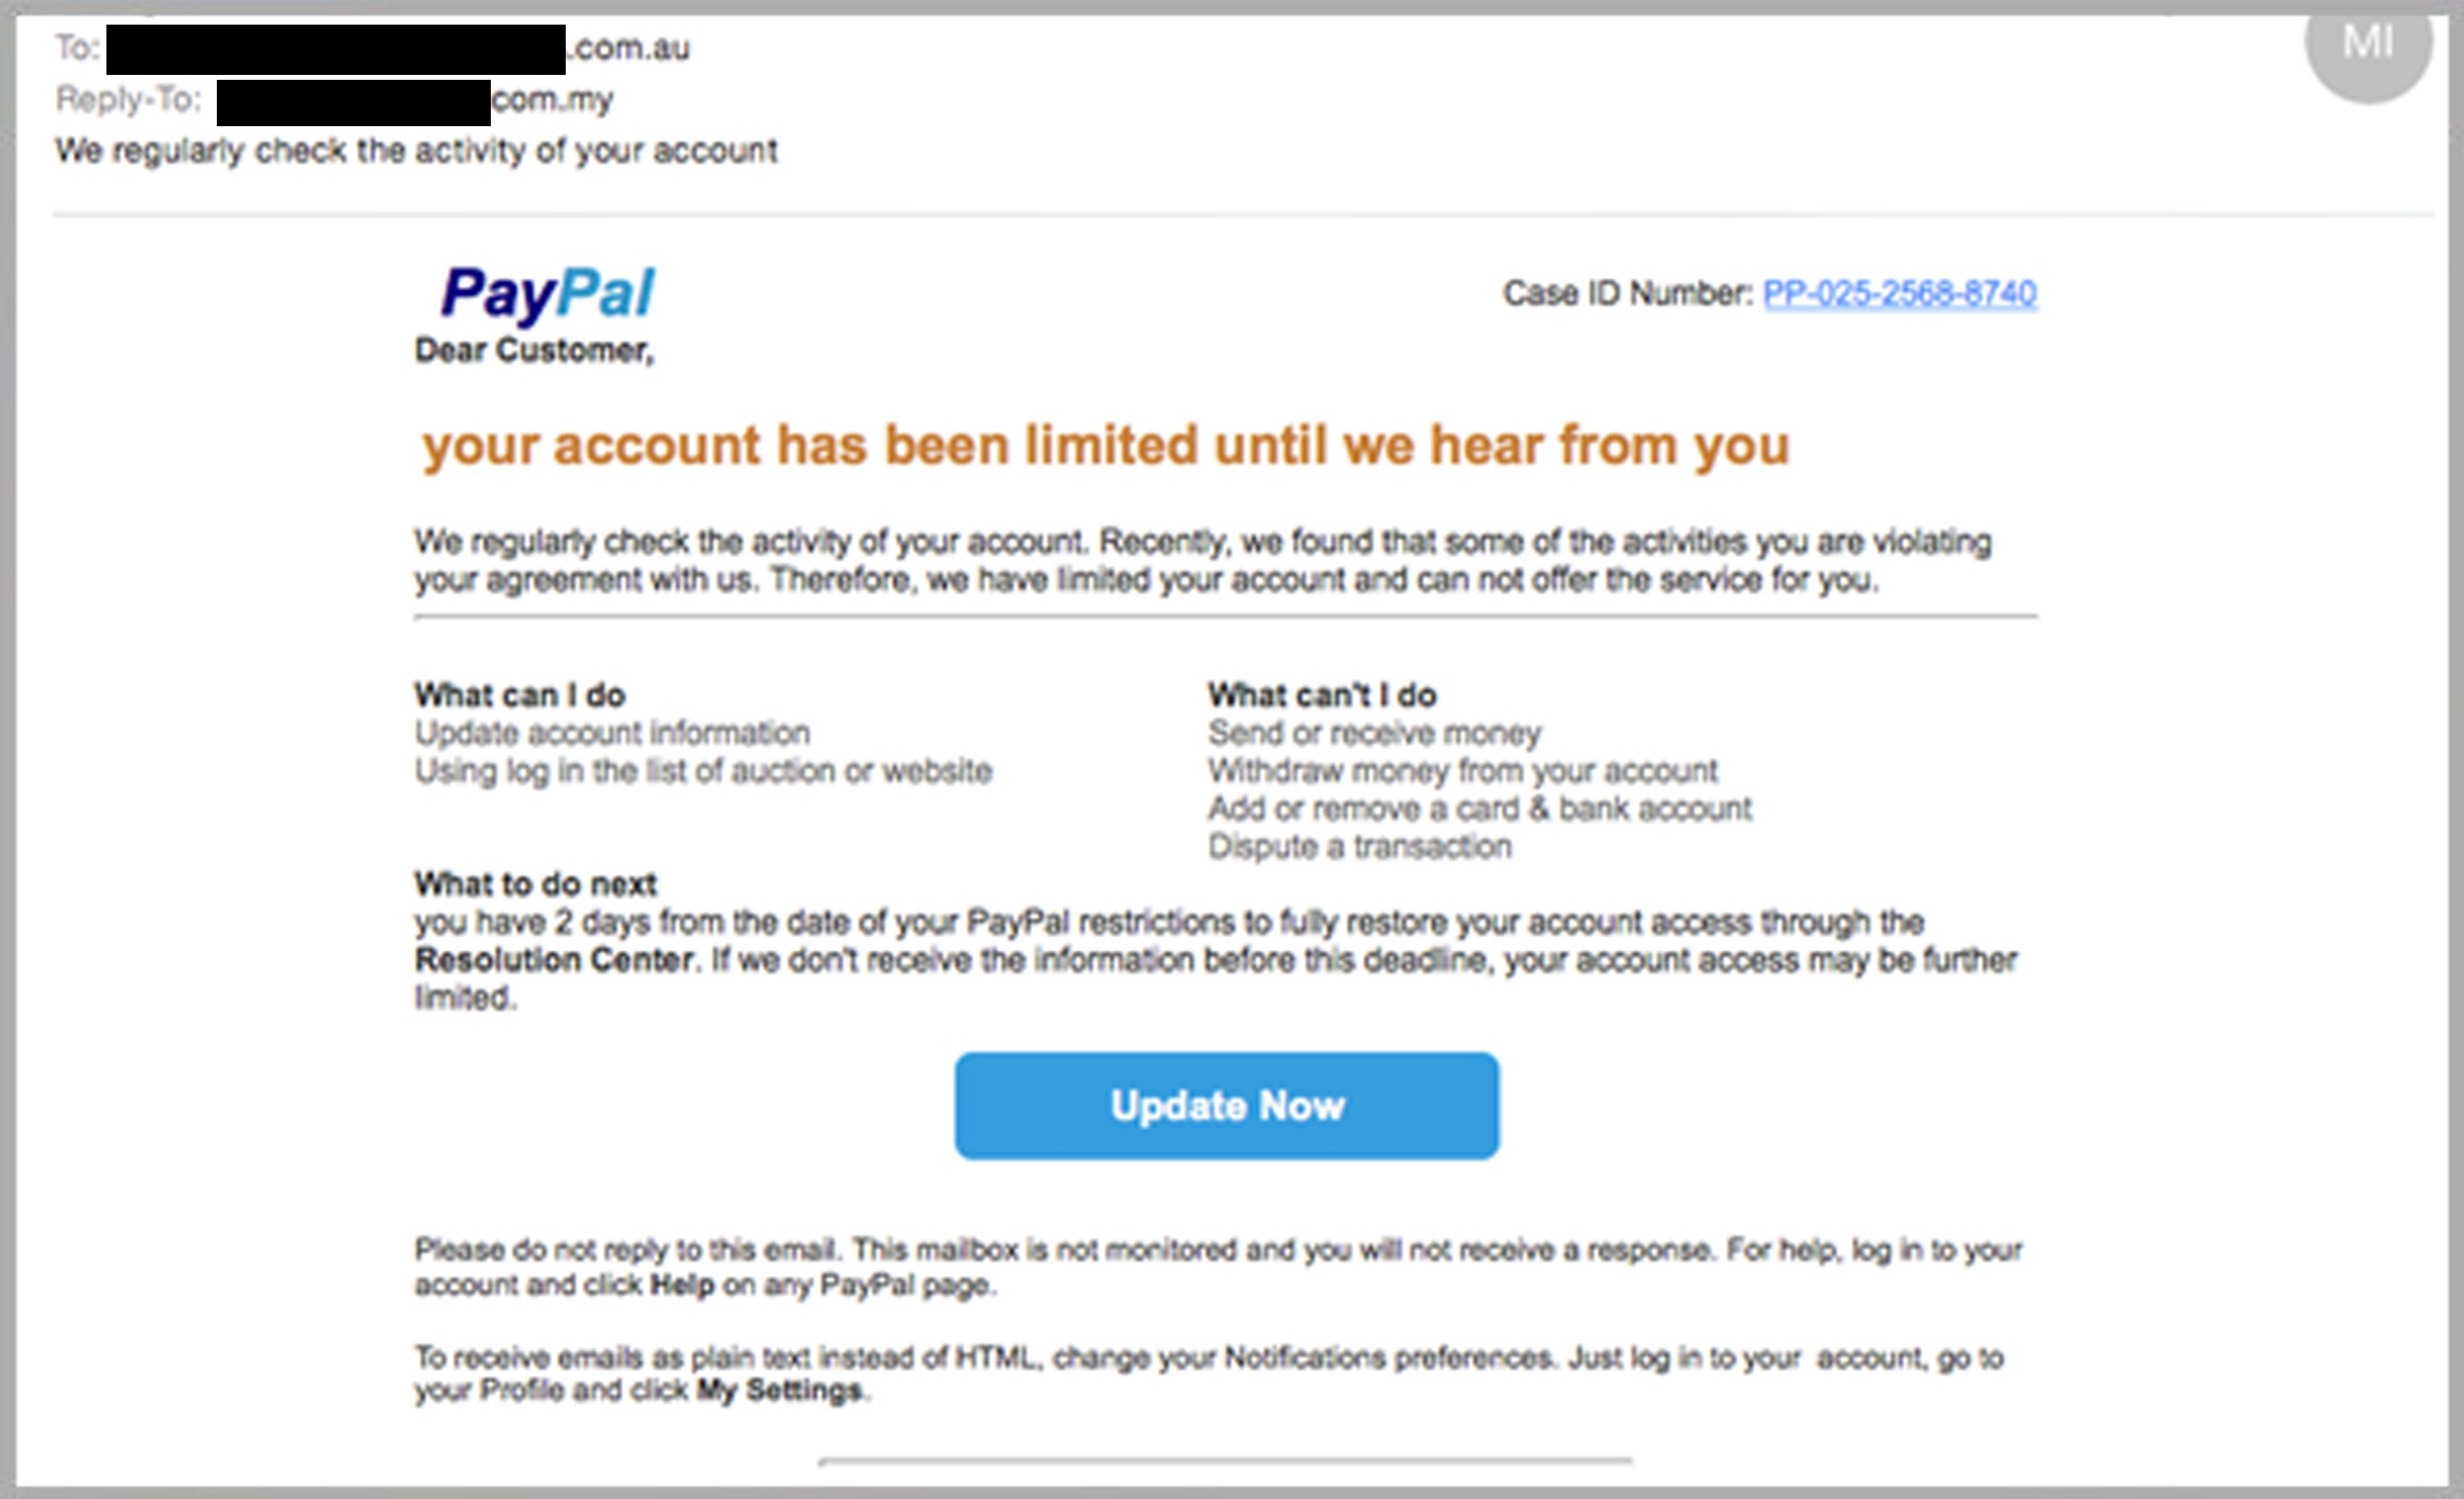 MailGuard_Pay_Pal_Phishing_Email_Scam_Email_Sample-1.jpg